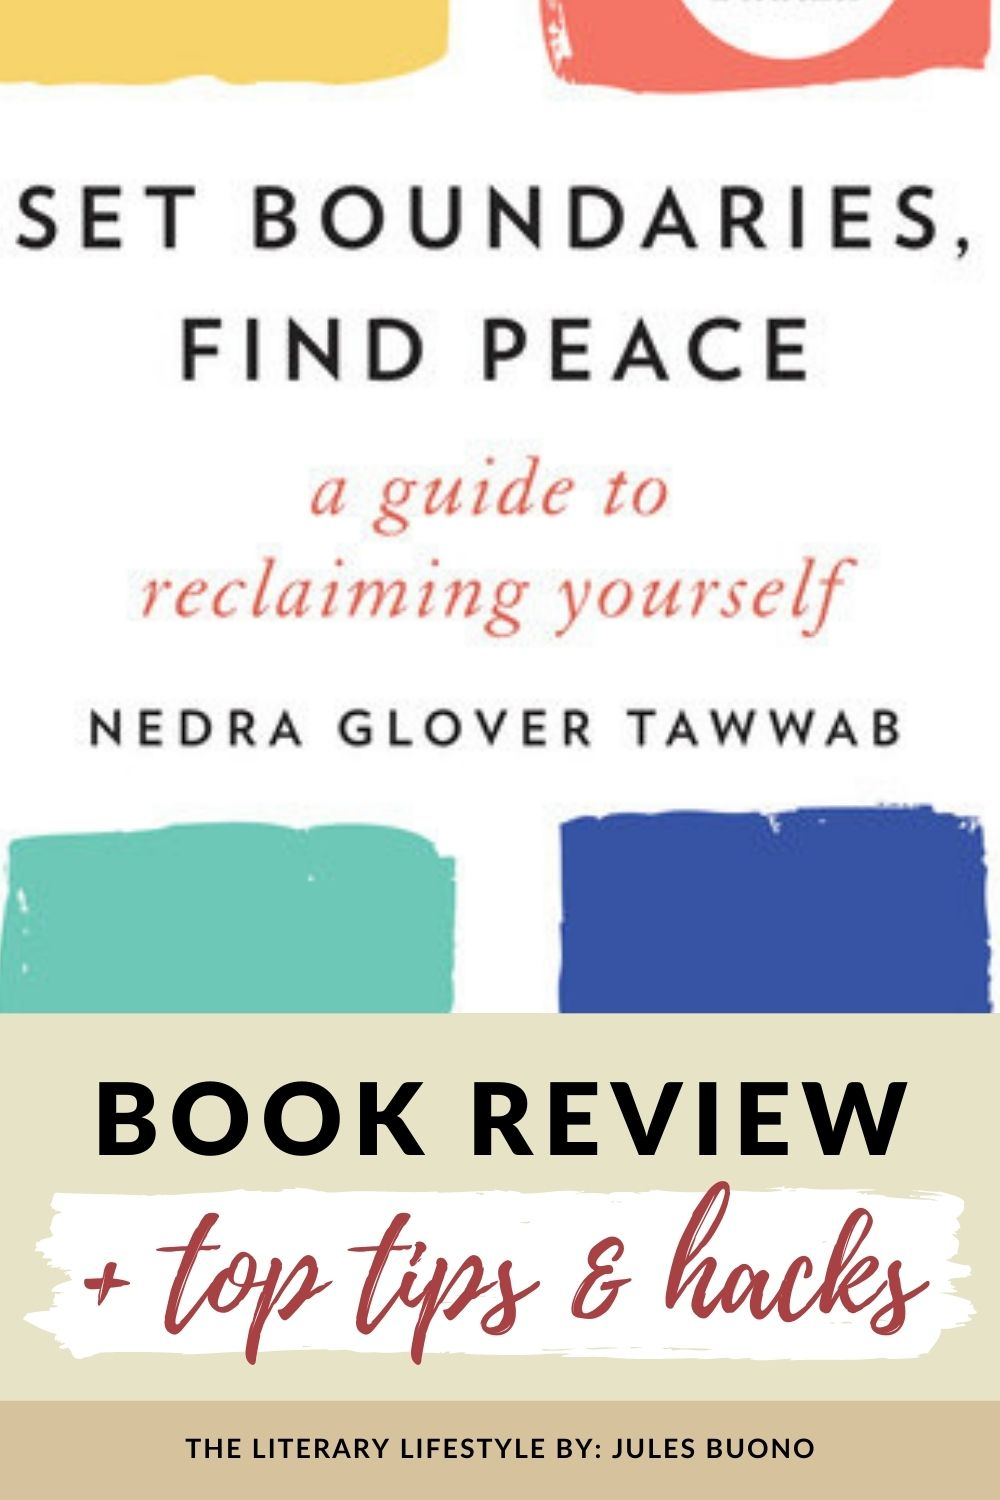 Book review of set boundaries find peace